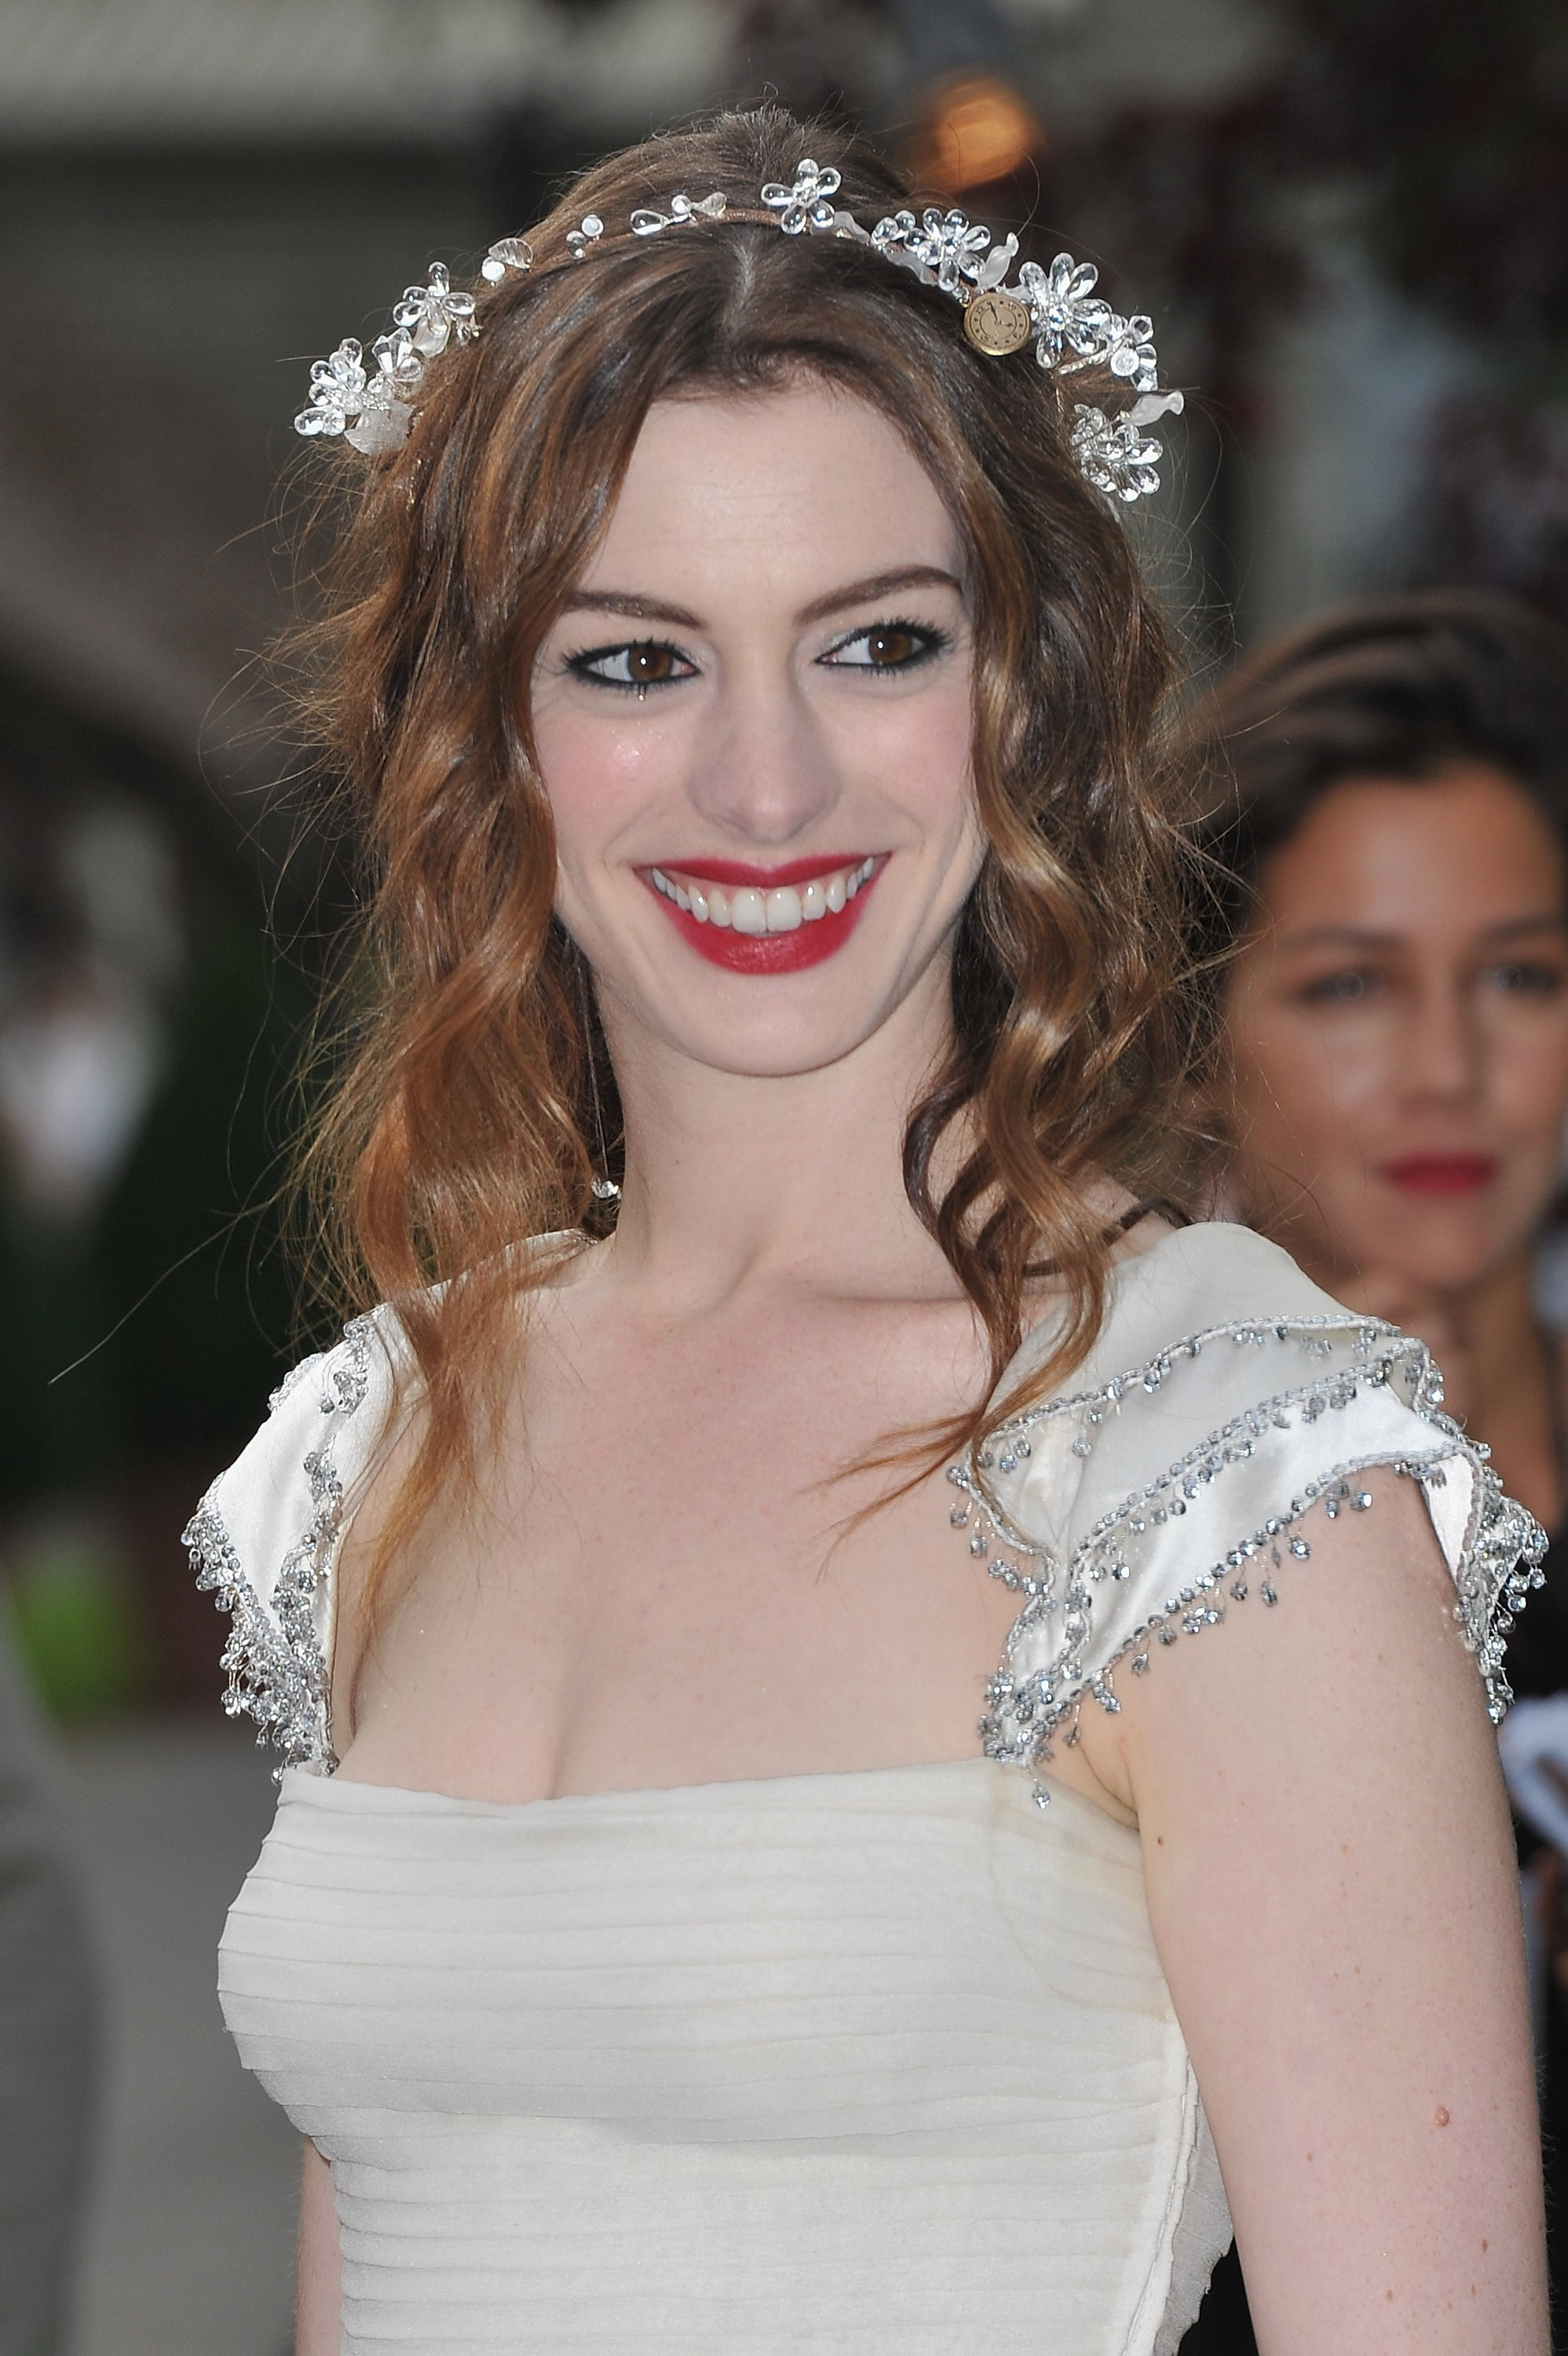 Anne wore a floral headpiece in her hair.